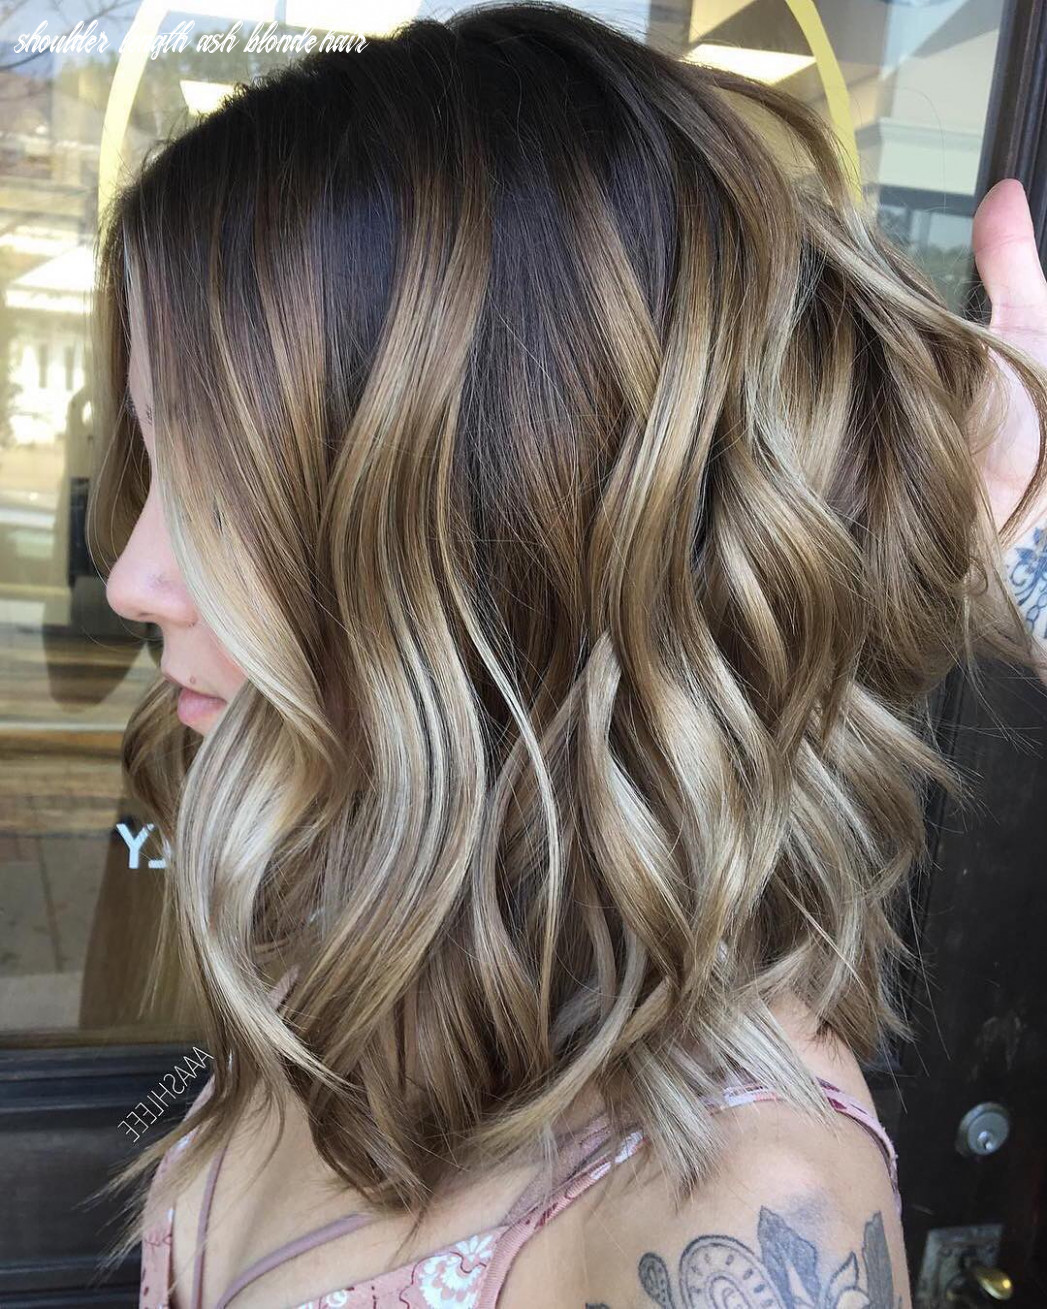 12 Ombre Balayage Hairstyles for Medium Length Hair, Hair Color 12